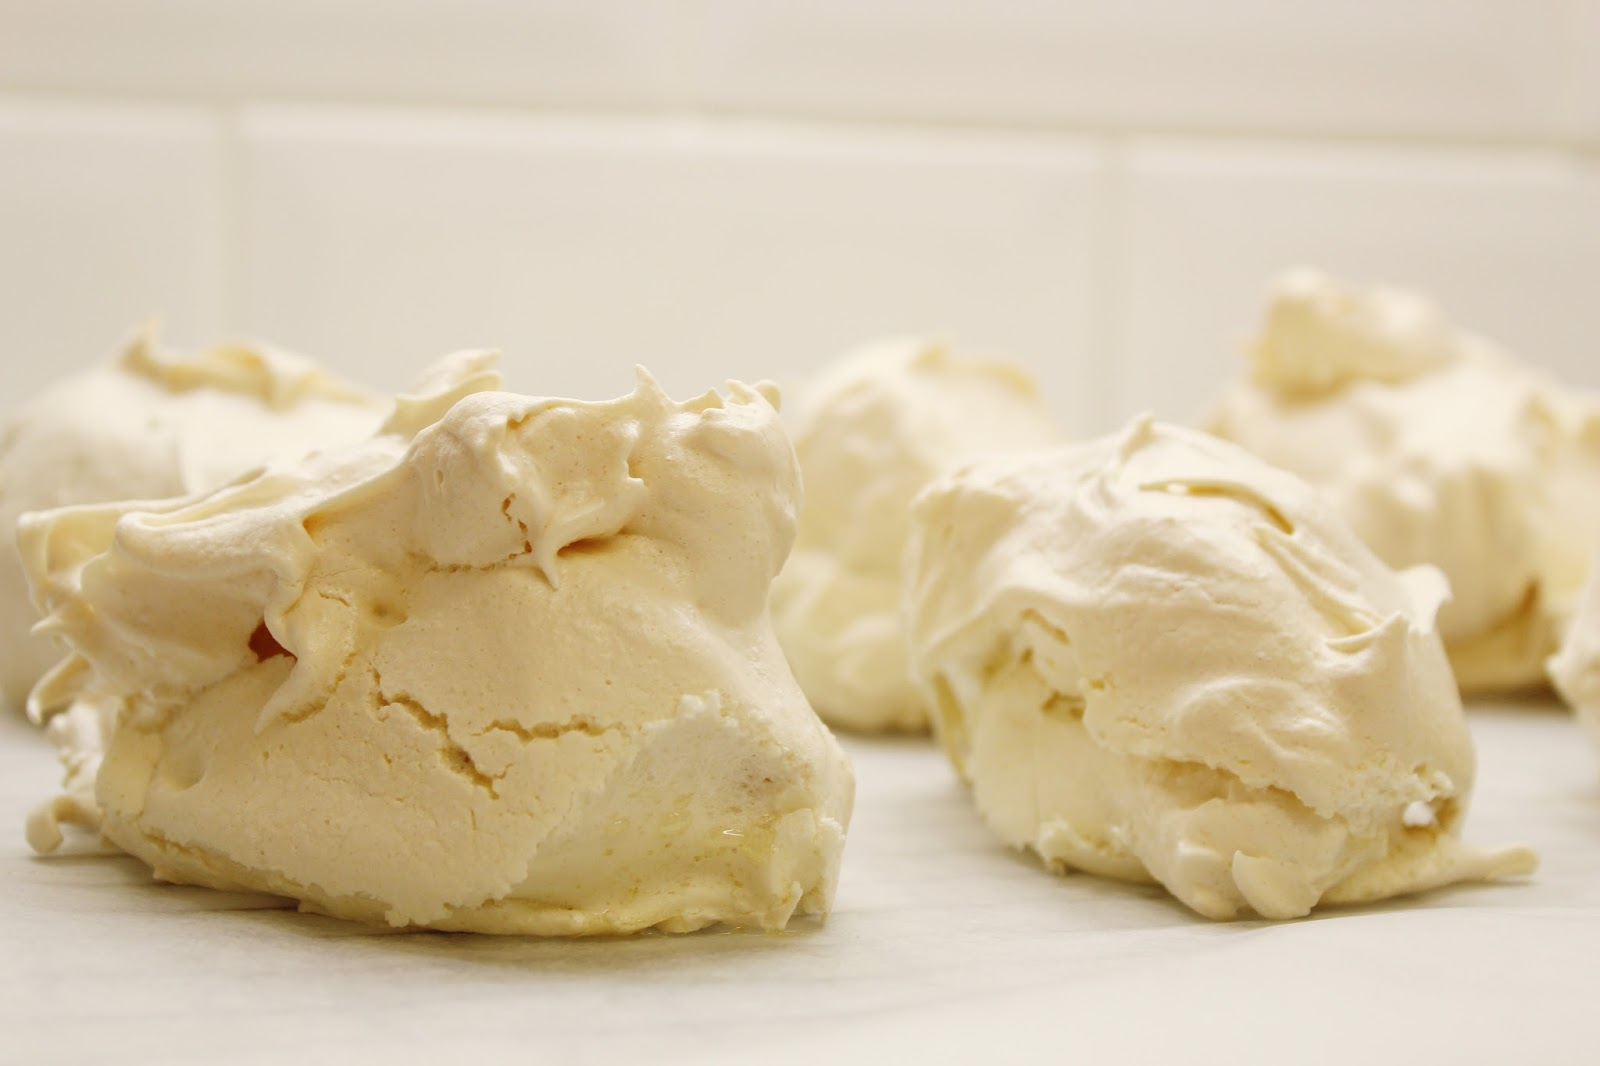 Mary Berry meringue recipe, eton mess or meringue nests